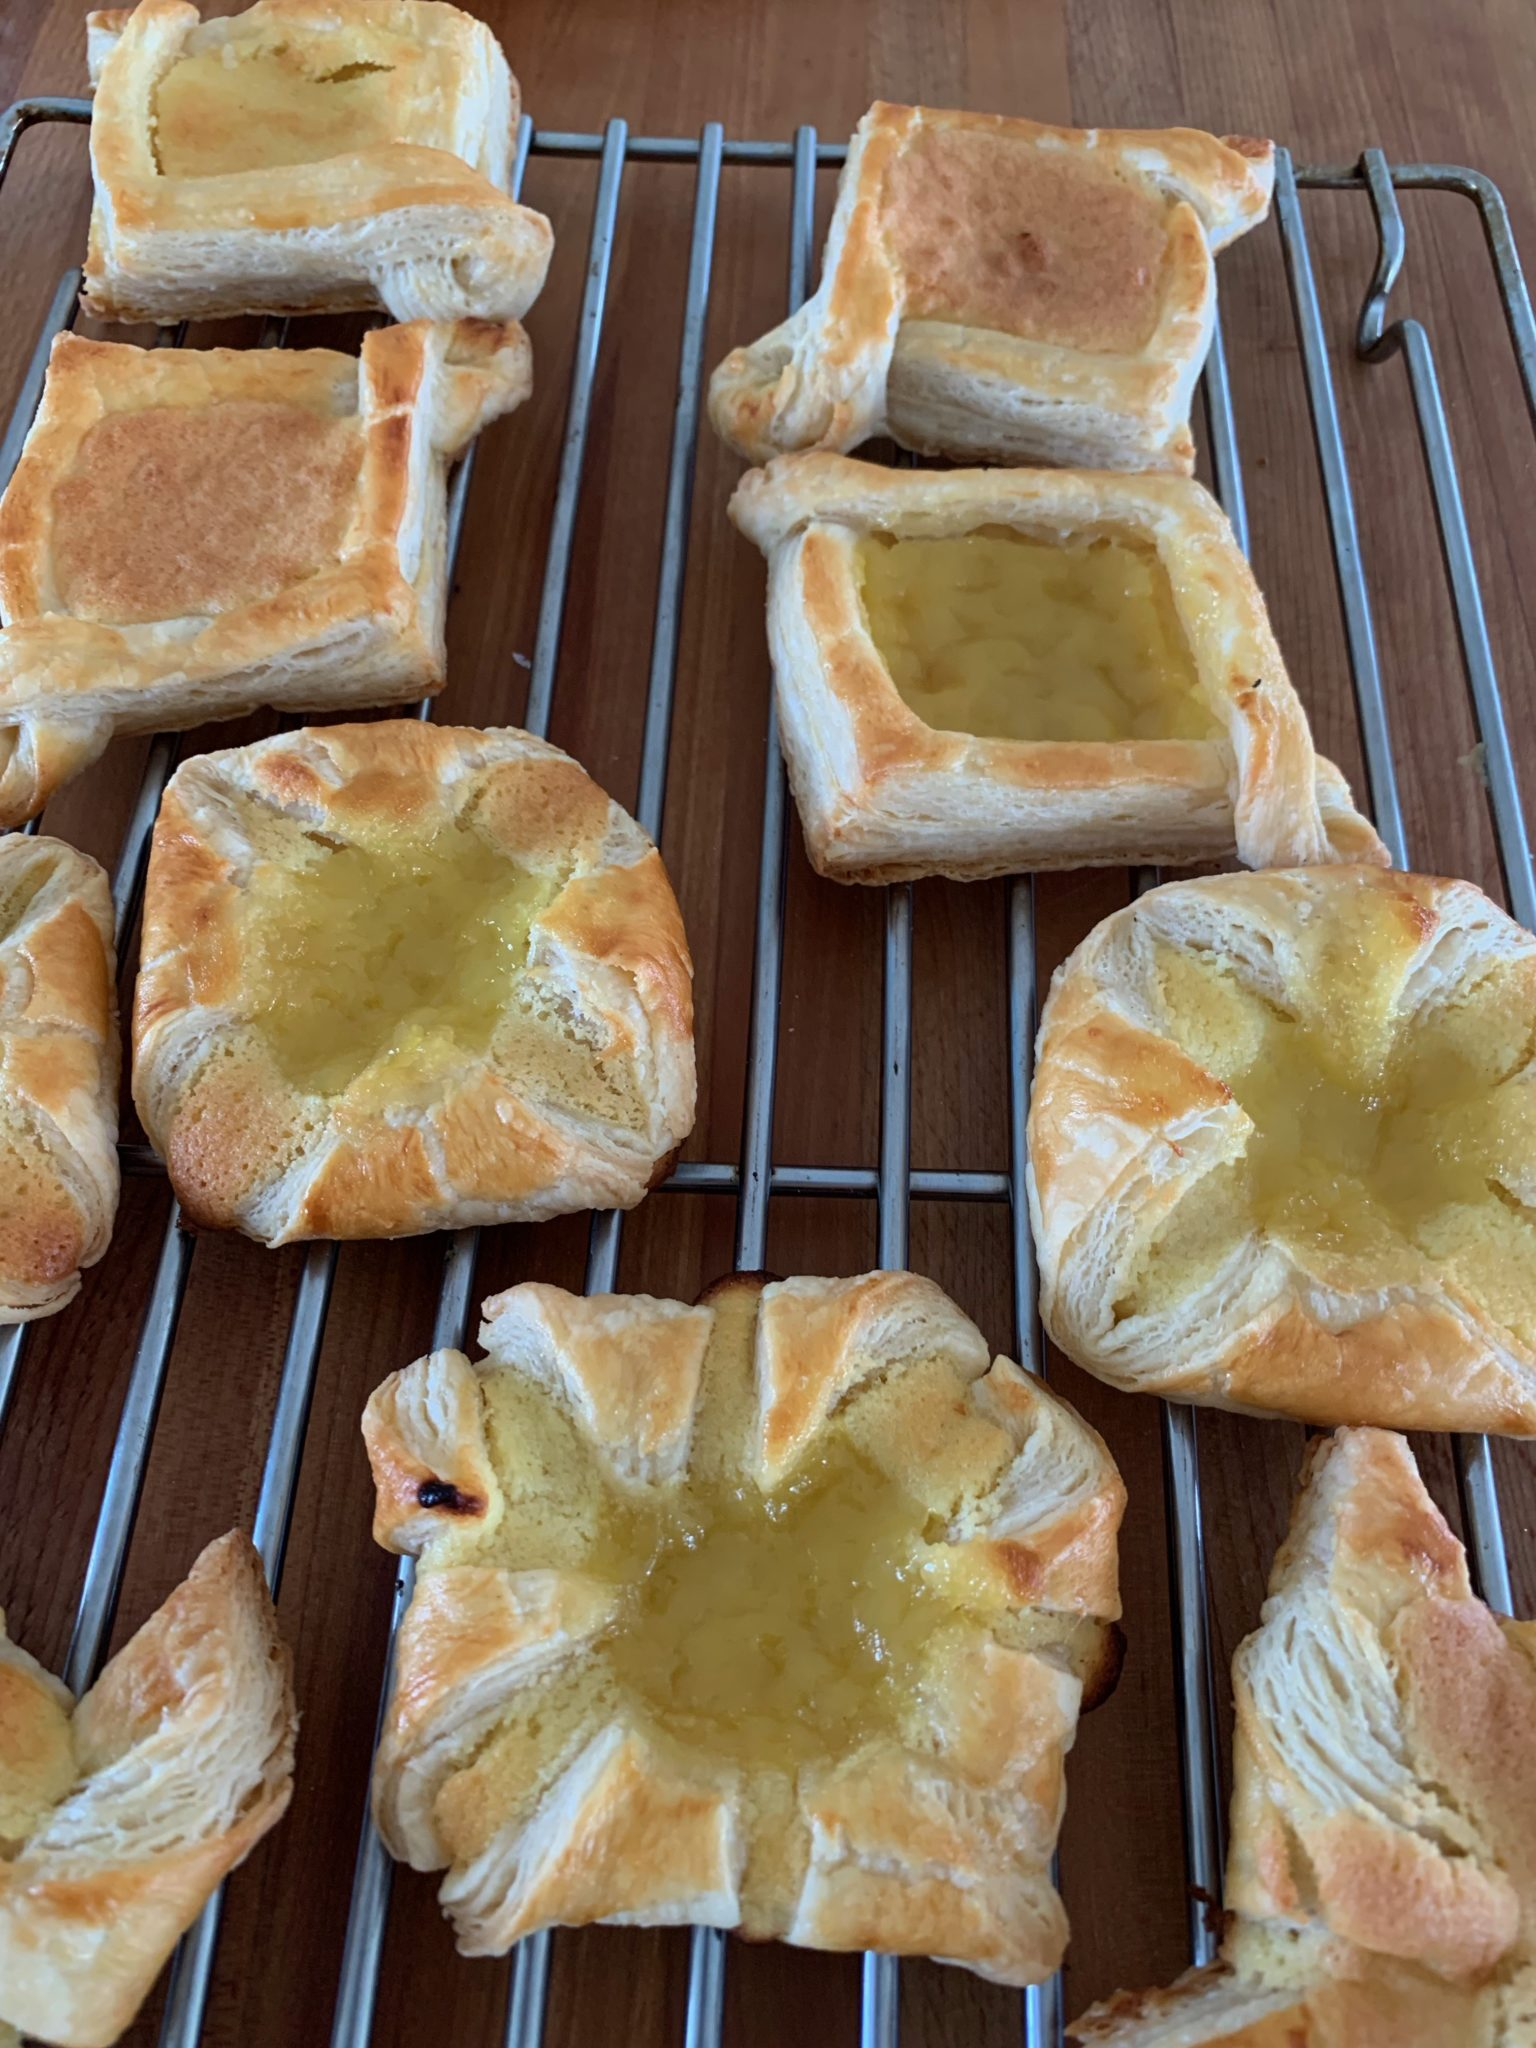 Cooling Danish pastries